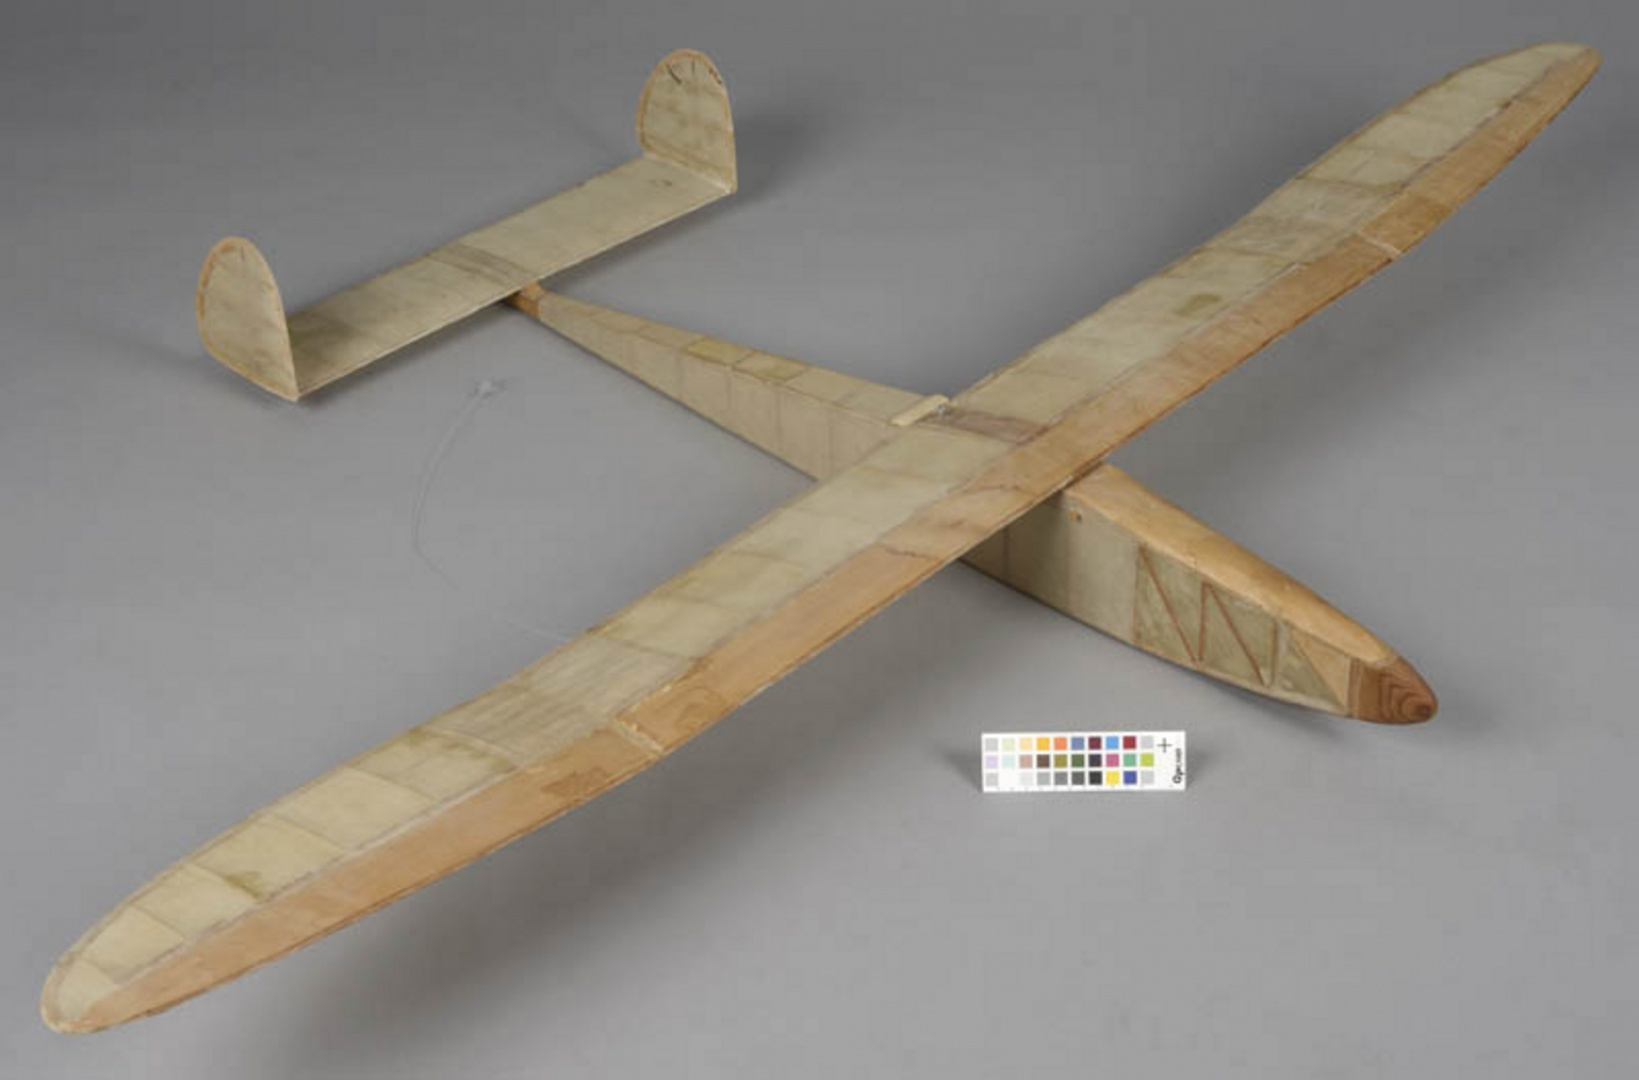 ill 16. Model plane 1 after conservation